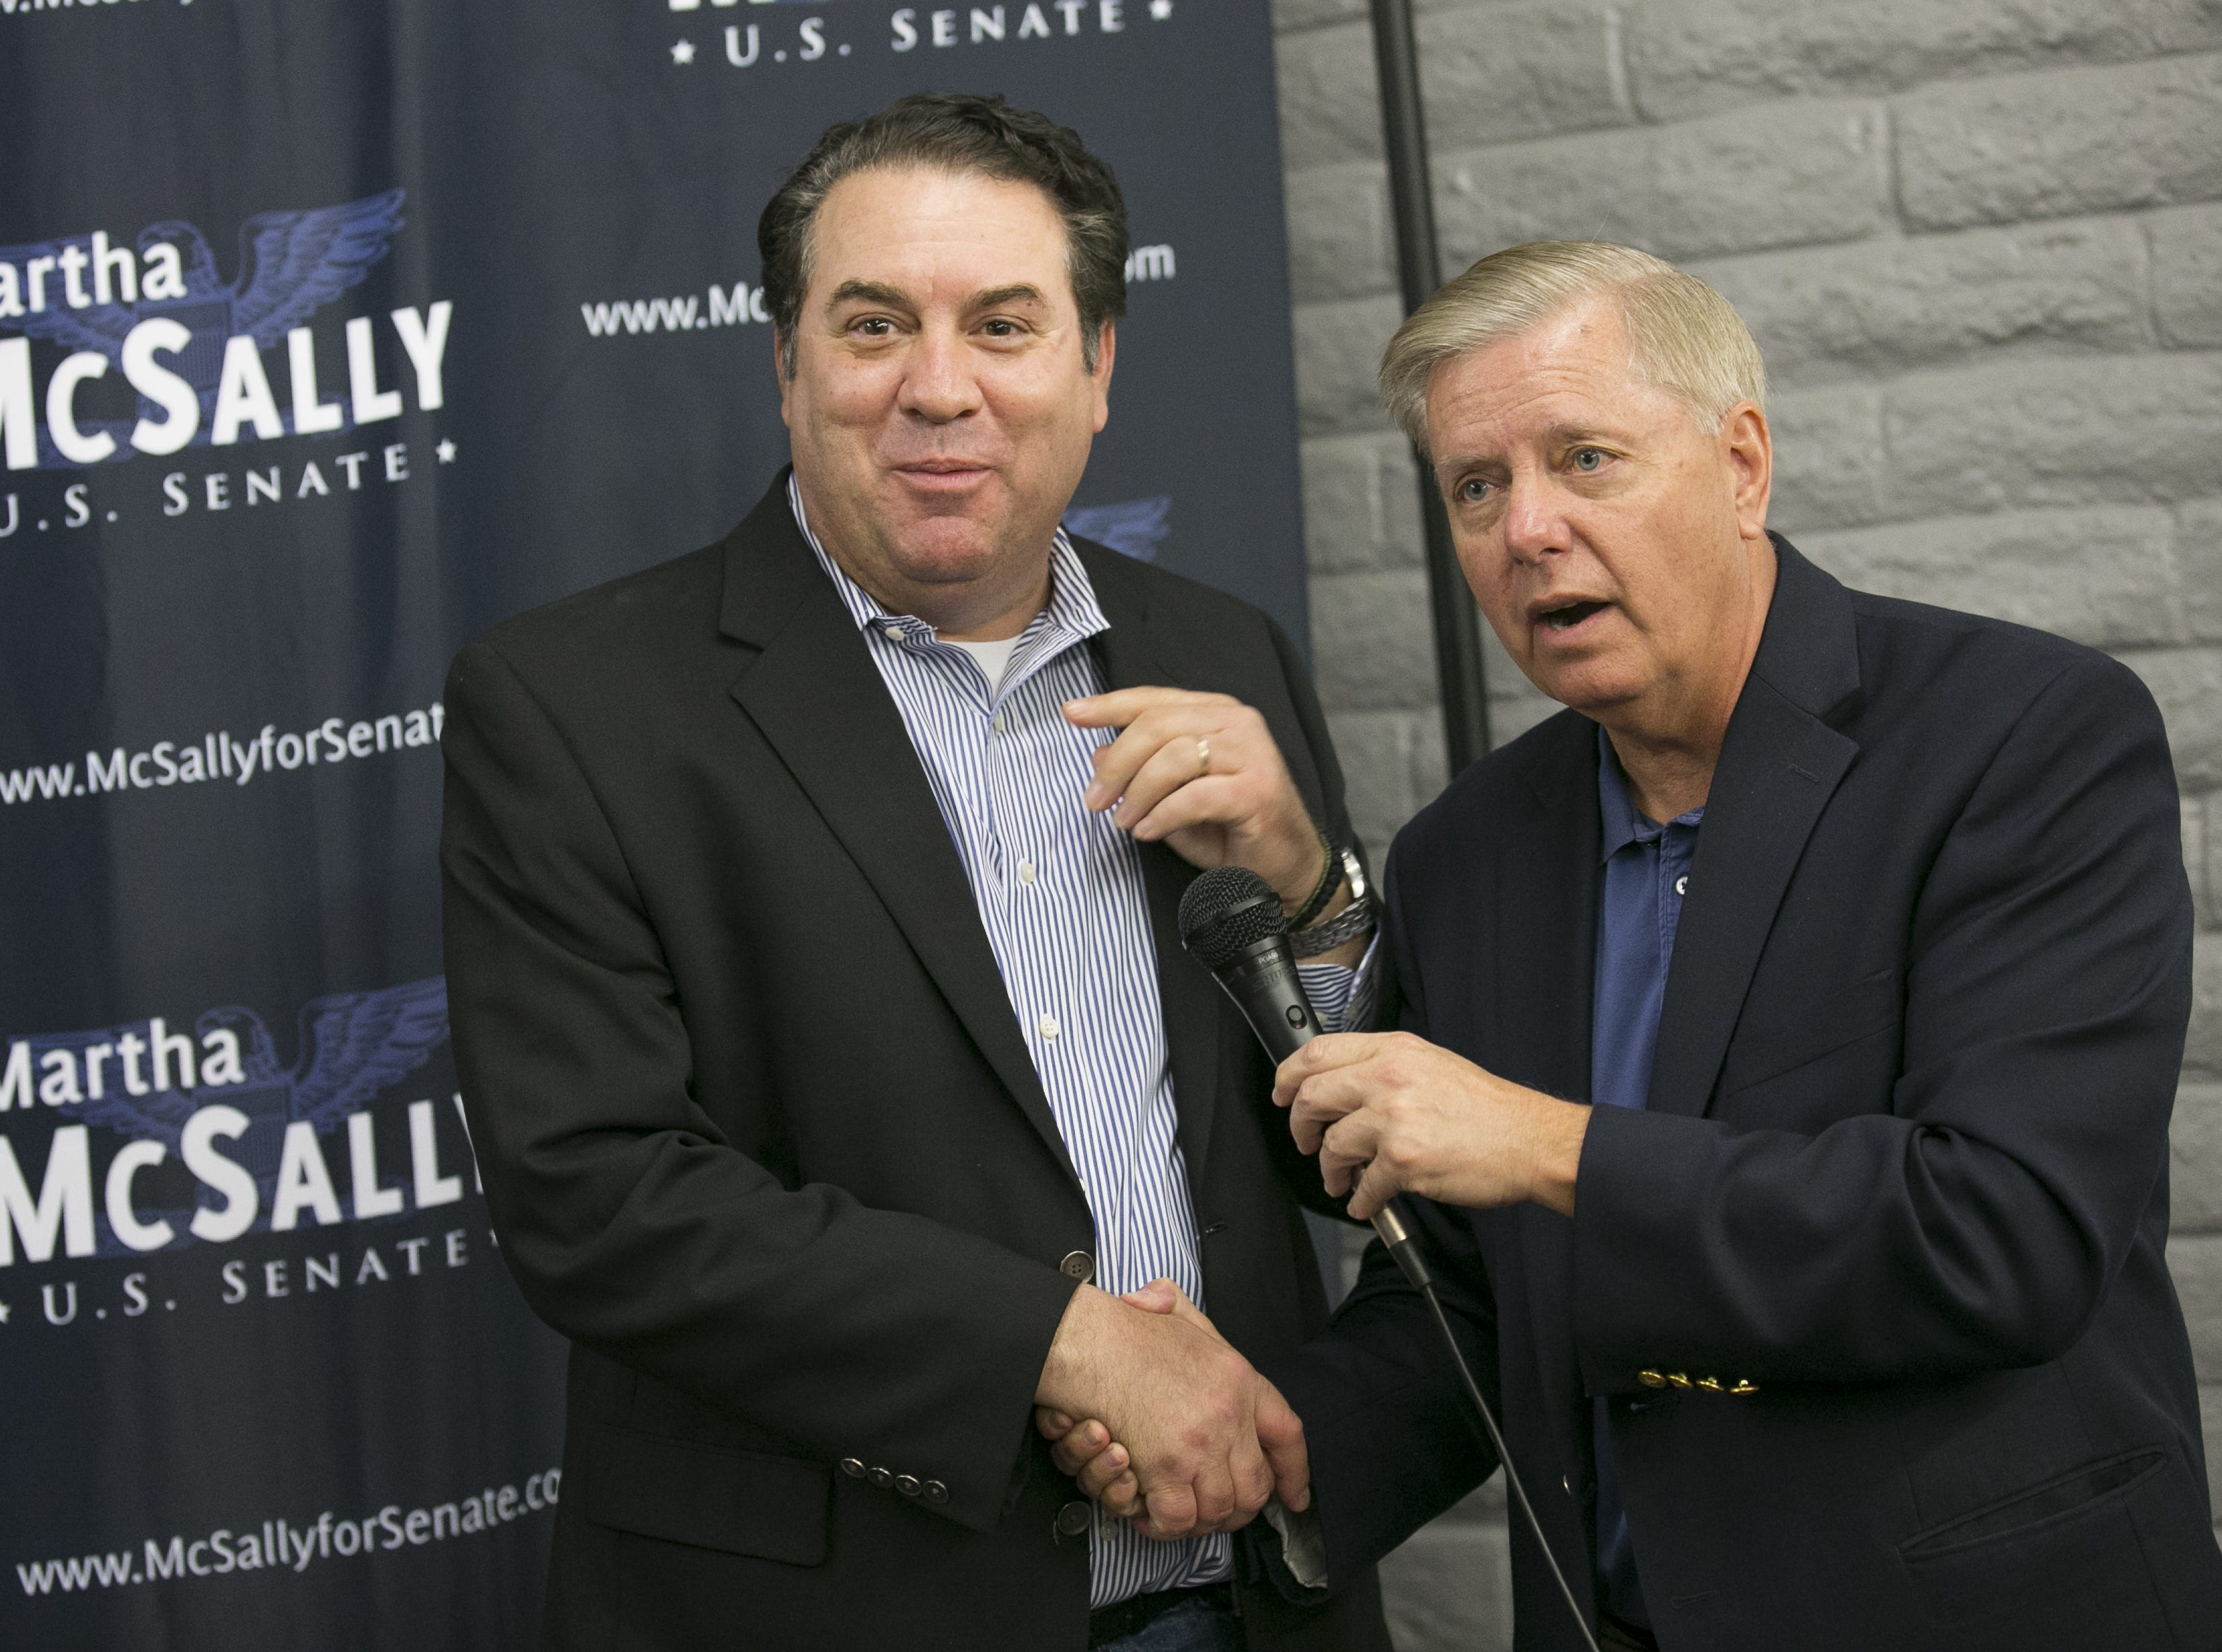 Attorney general Mark Brnovich (left) shakes hands with Sen. Lindsey Graham, R-S.C. (right) at the Arizona GOP headquarters in Phoenix, Ariz. on Oct. 27, 2018.